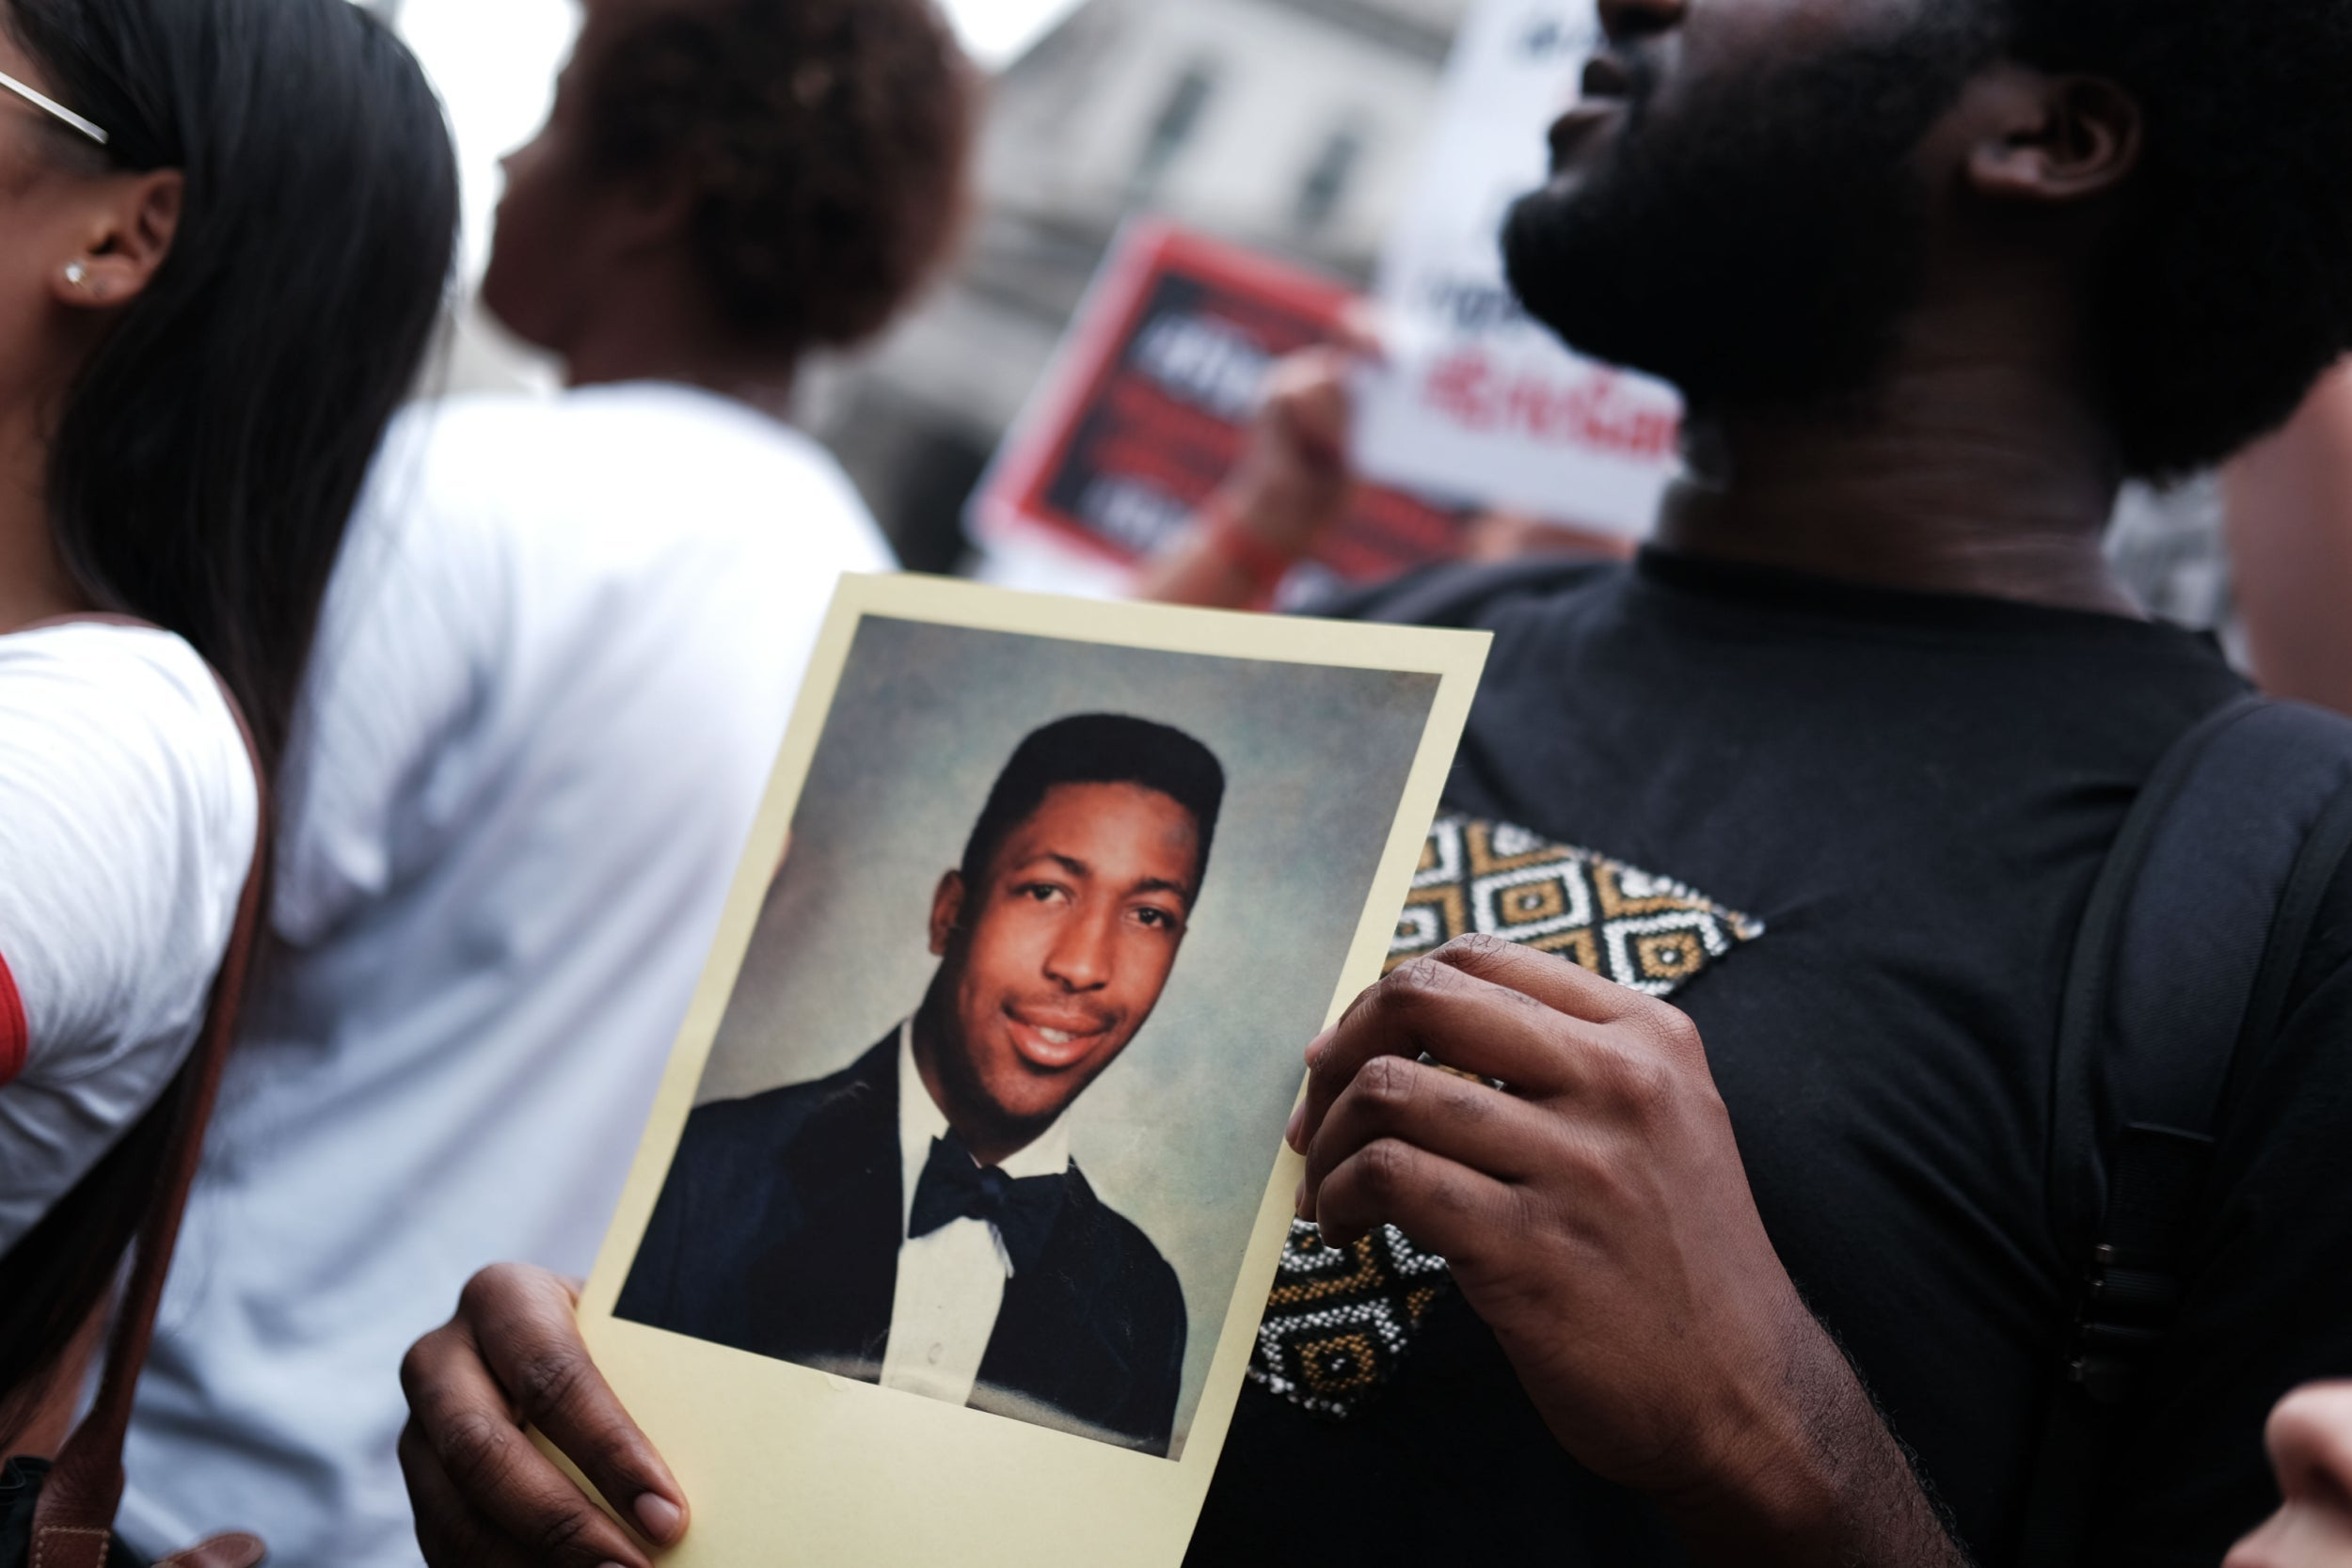 The NYPD officer accused of killing Eric Garner has been fired. Don't tell me I should be happy